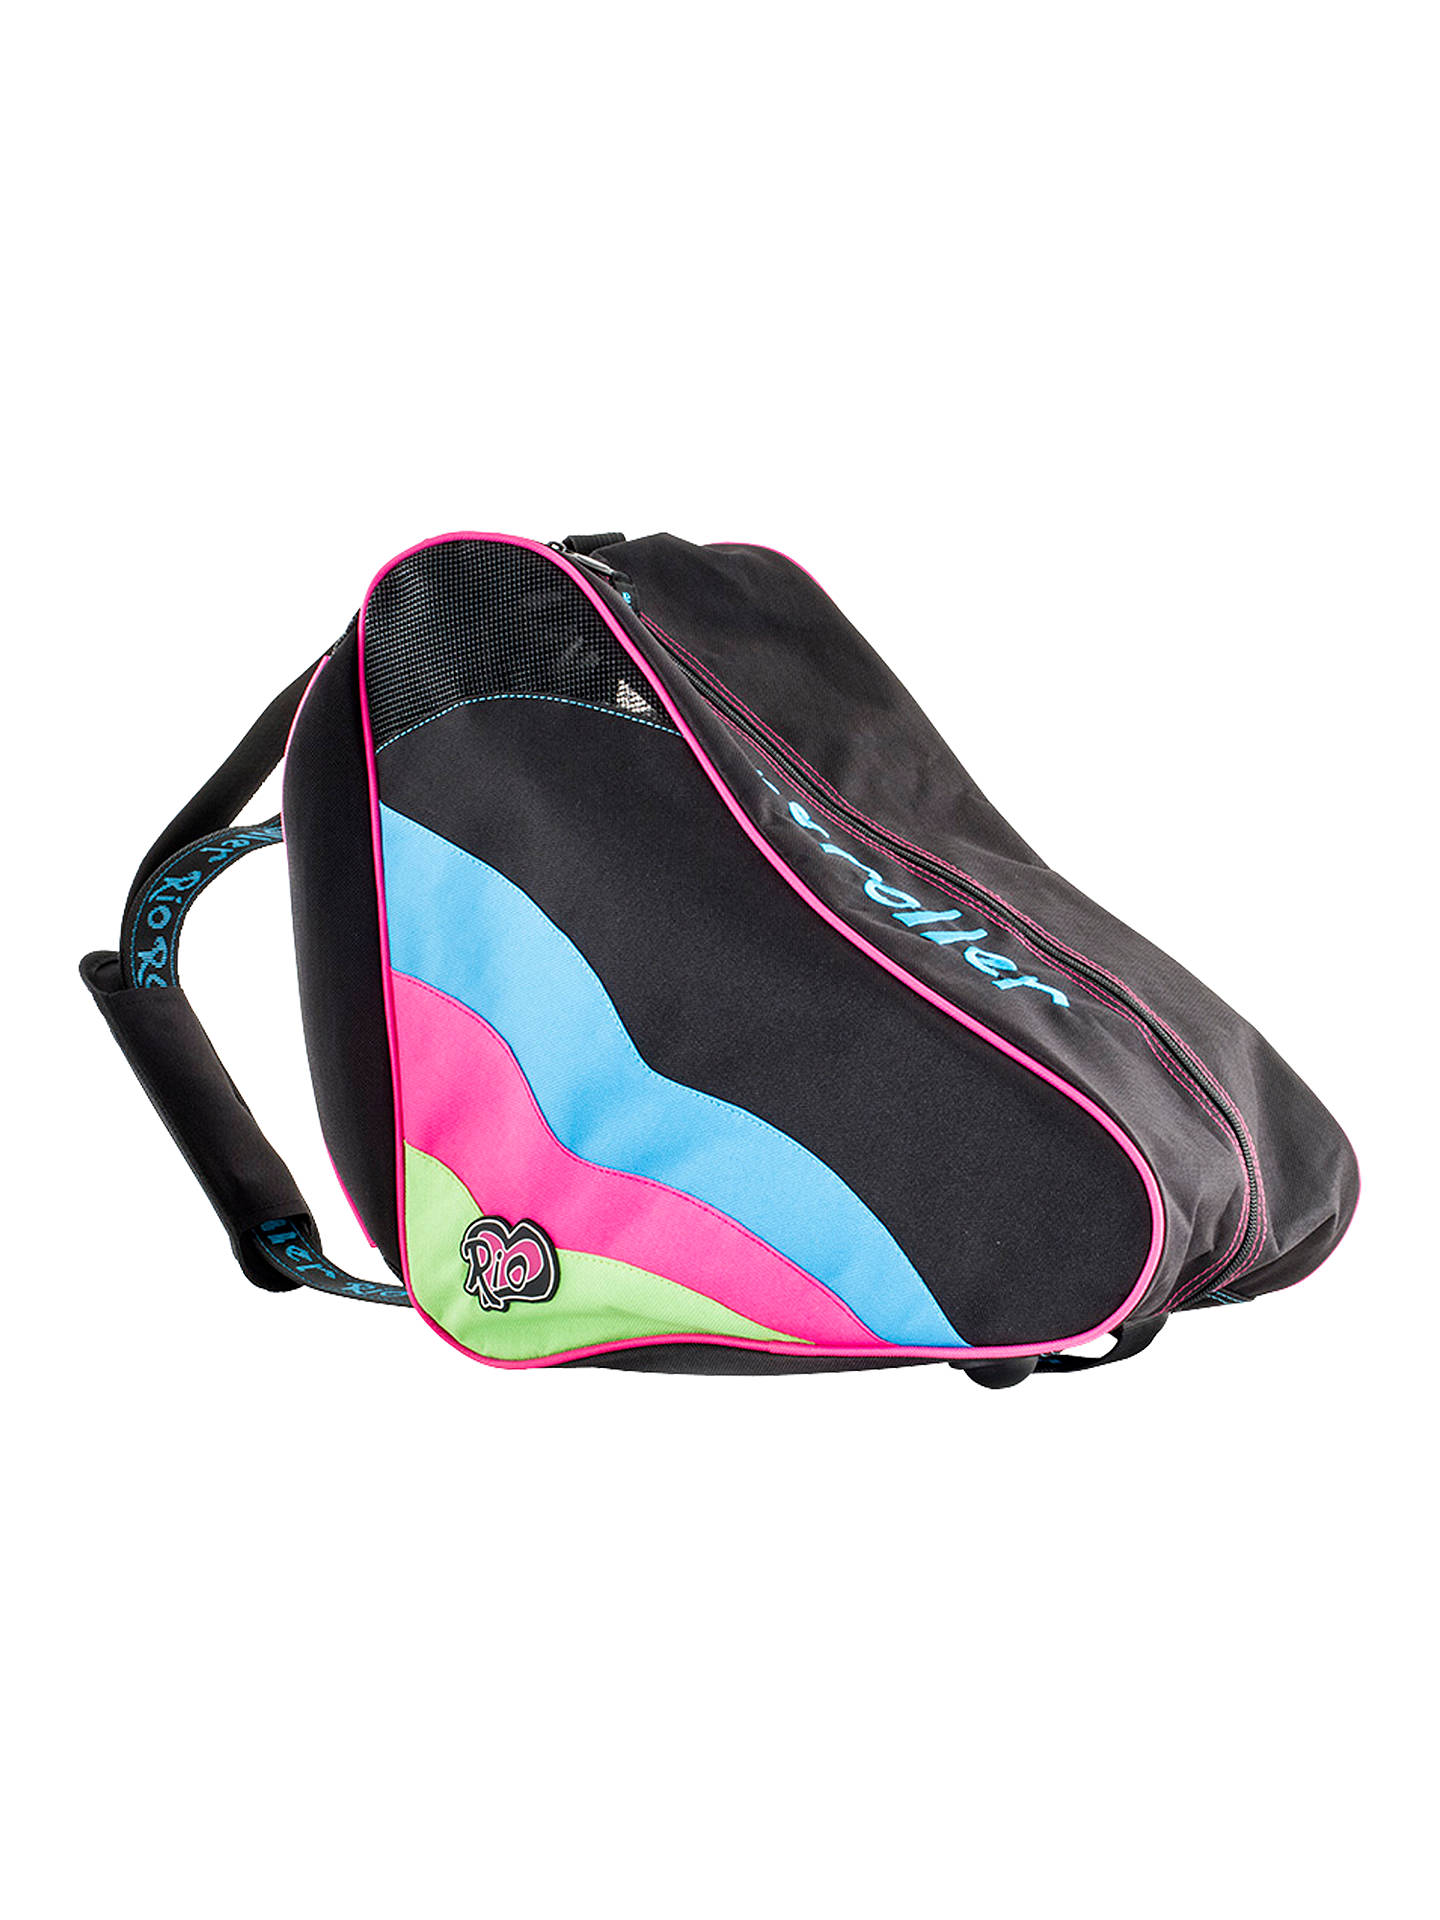 BuyRio Roller Passion Skate Bag, Black Online at johnlewis.com